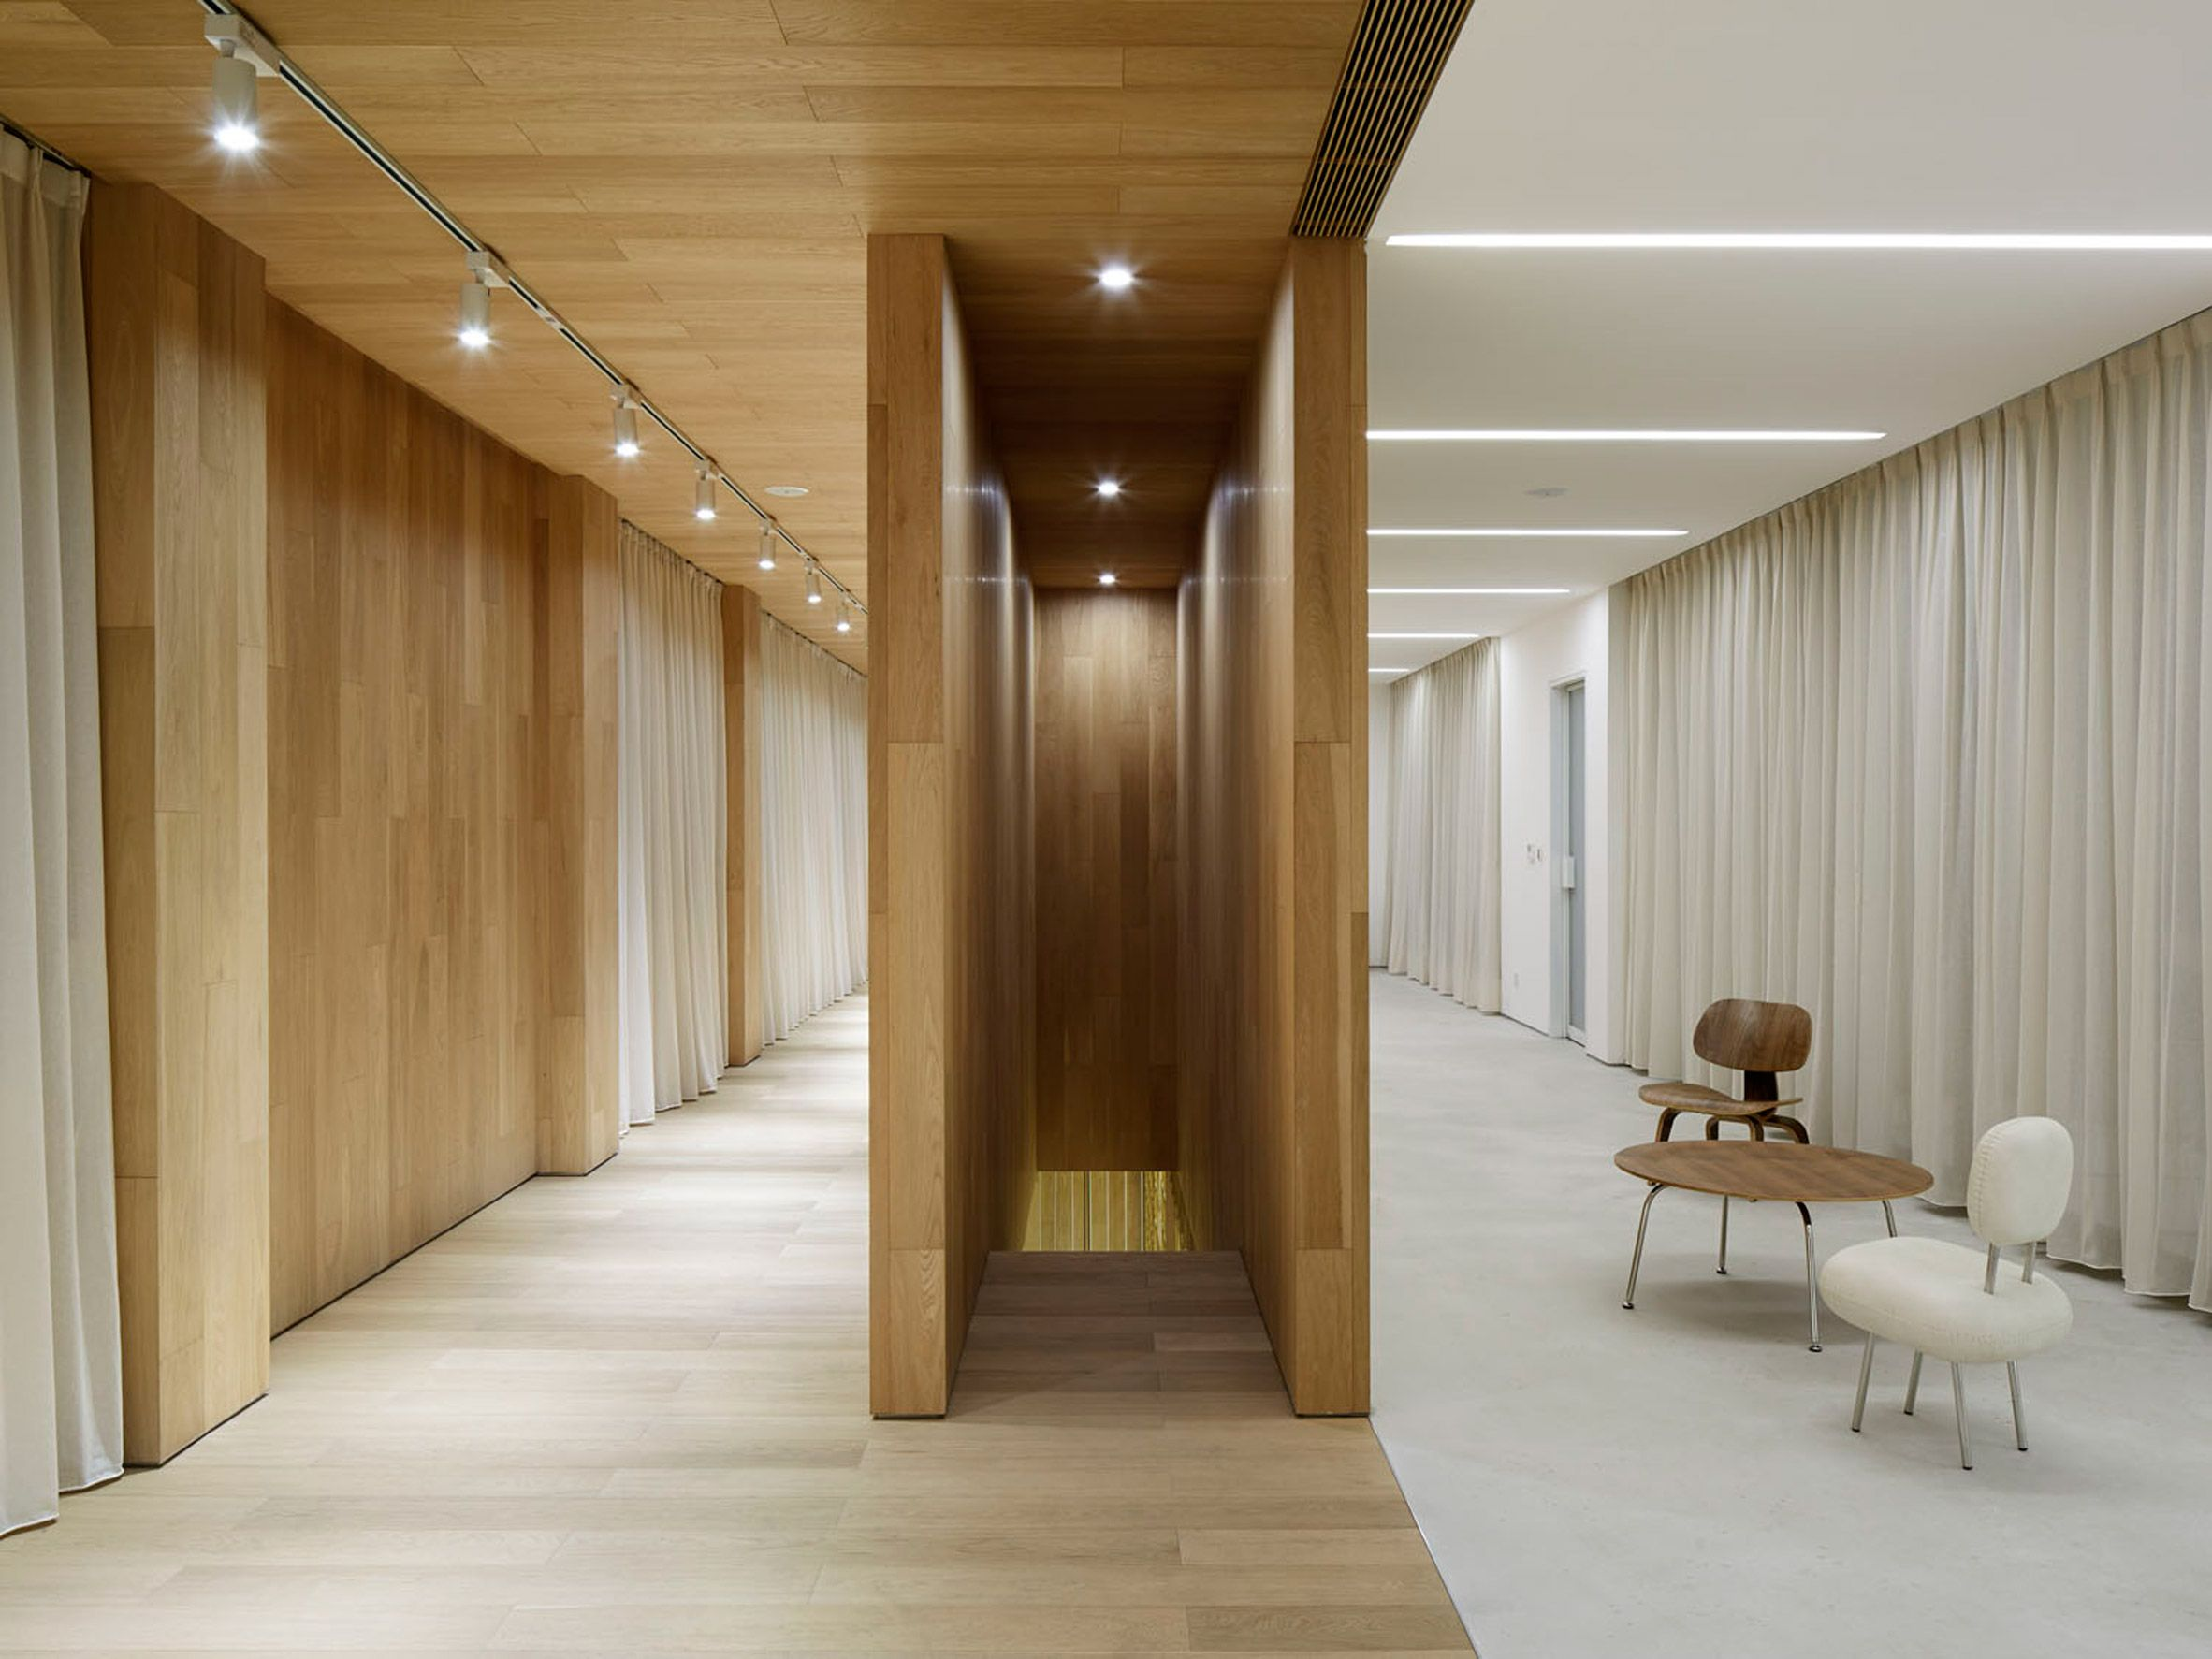 Sales office by team bldg corridor walkway interior wood cream spotlight track linear contrast hotel luxury office